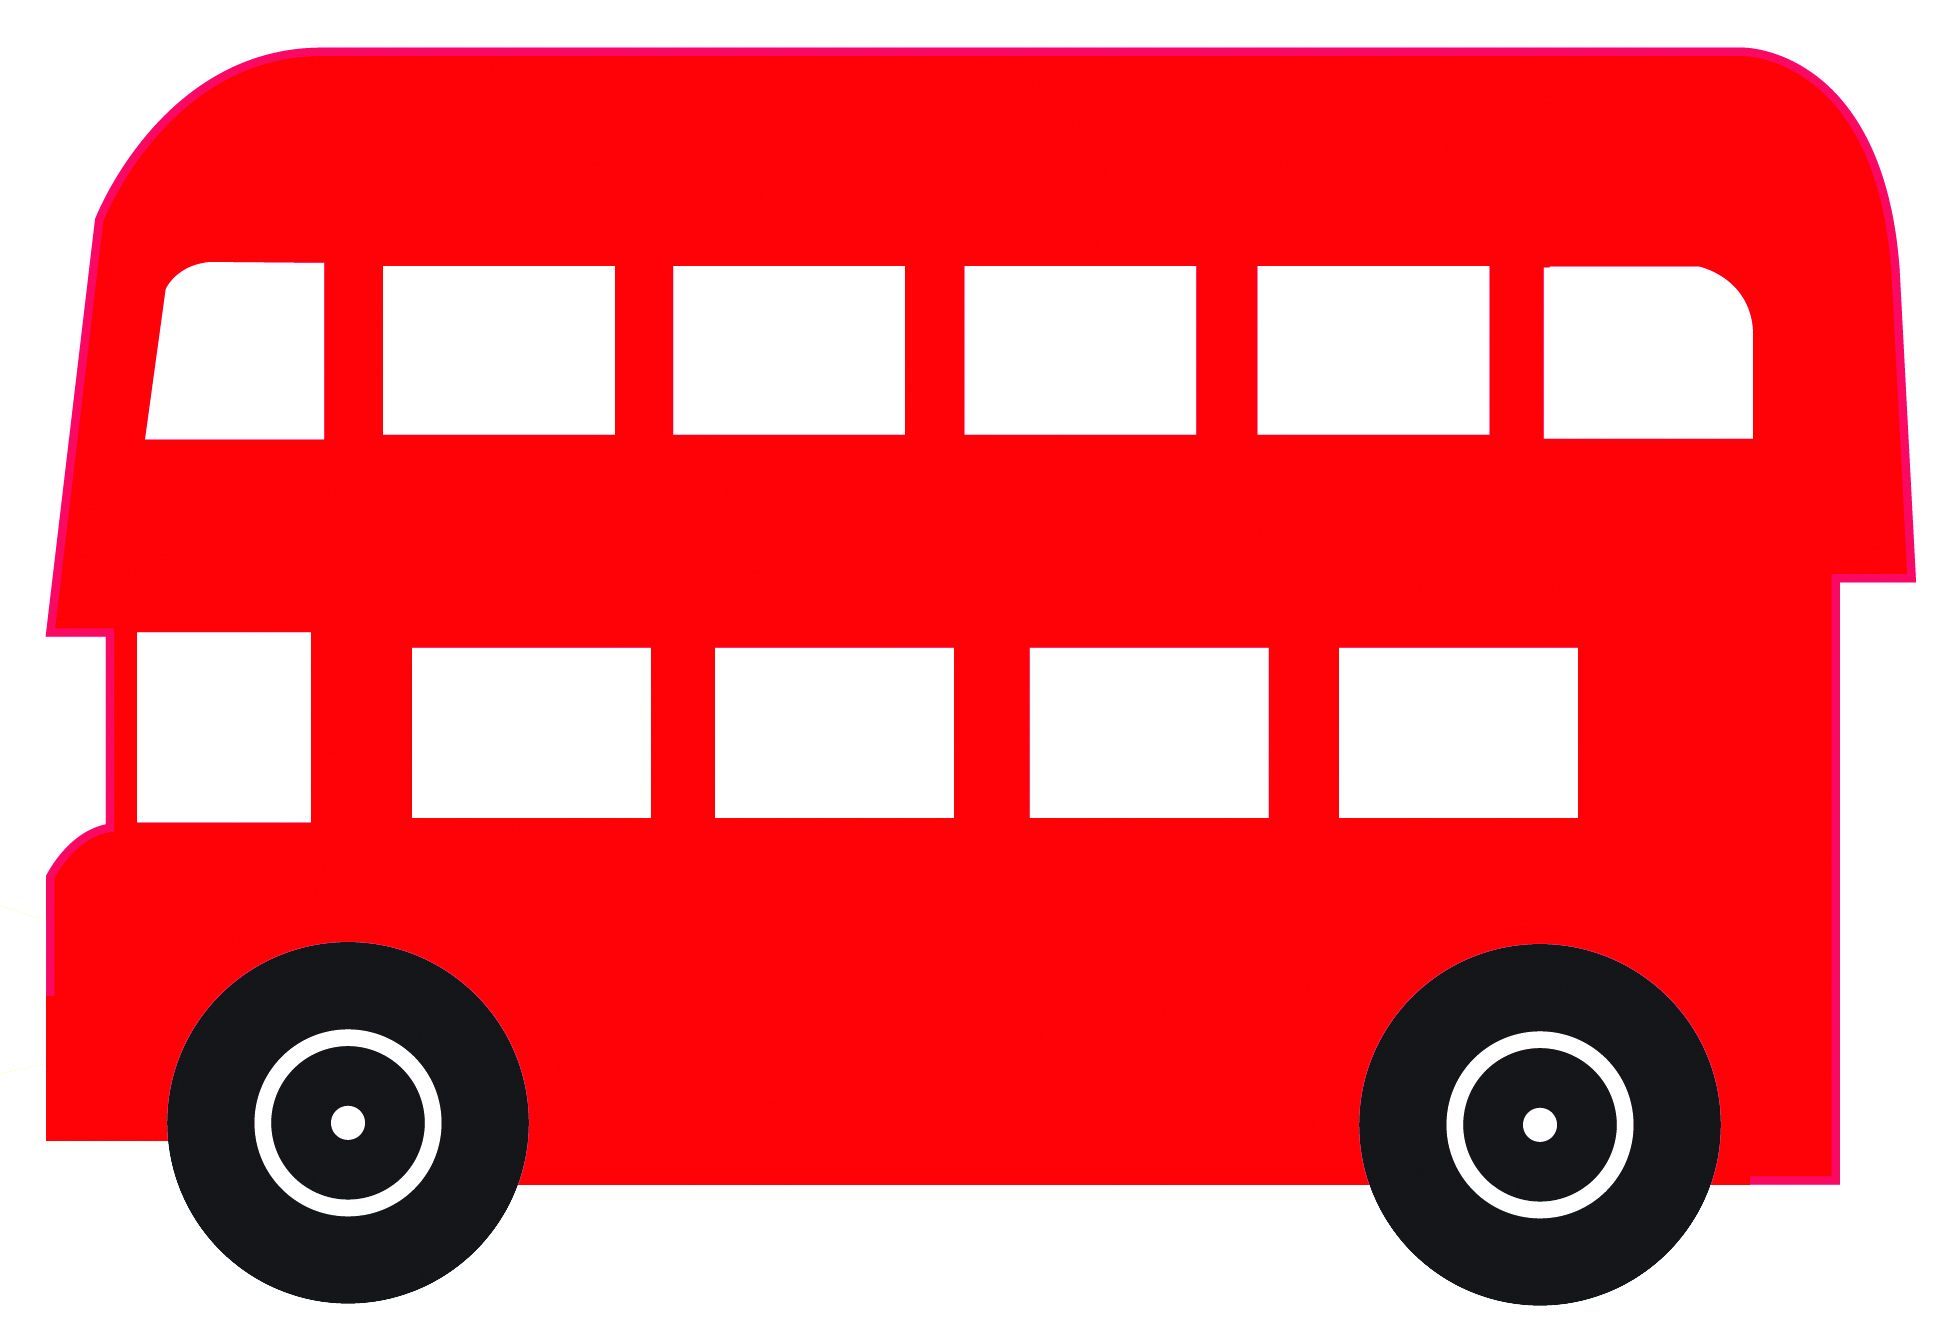 Red bus clipart 6 » Clipart Station.